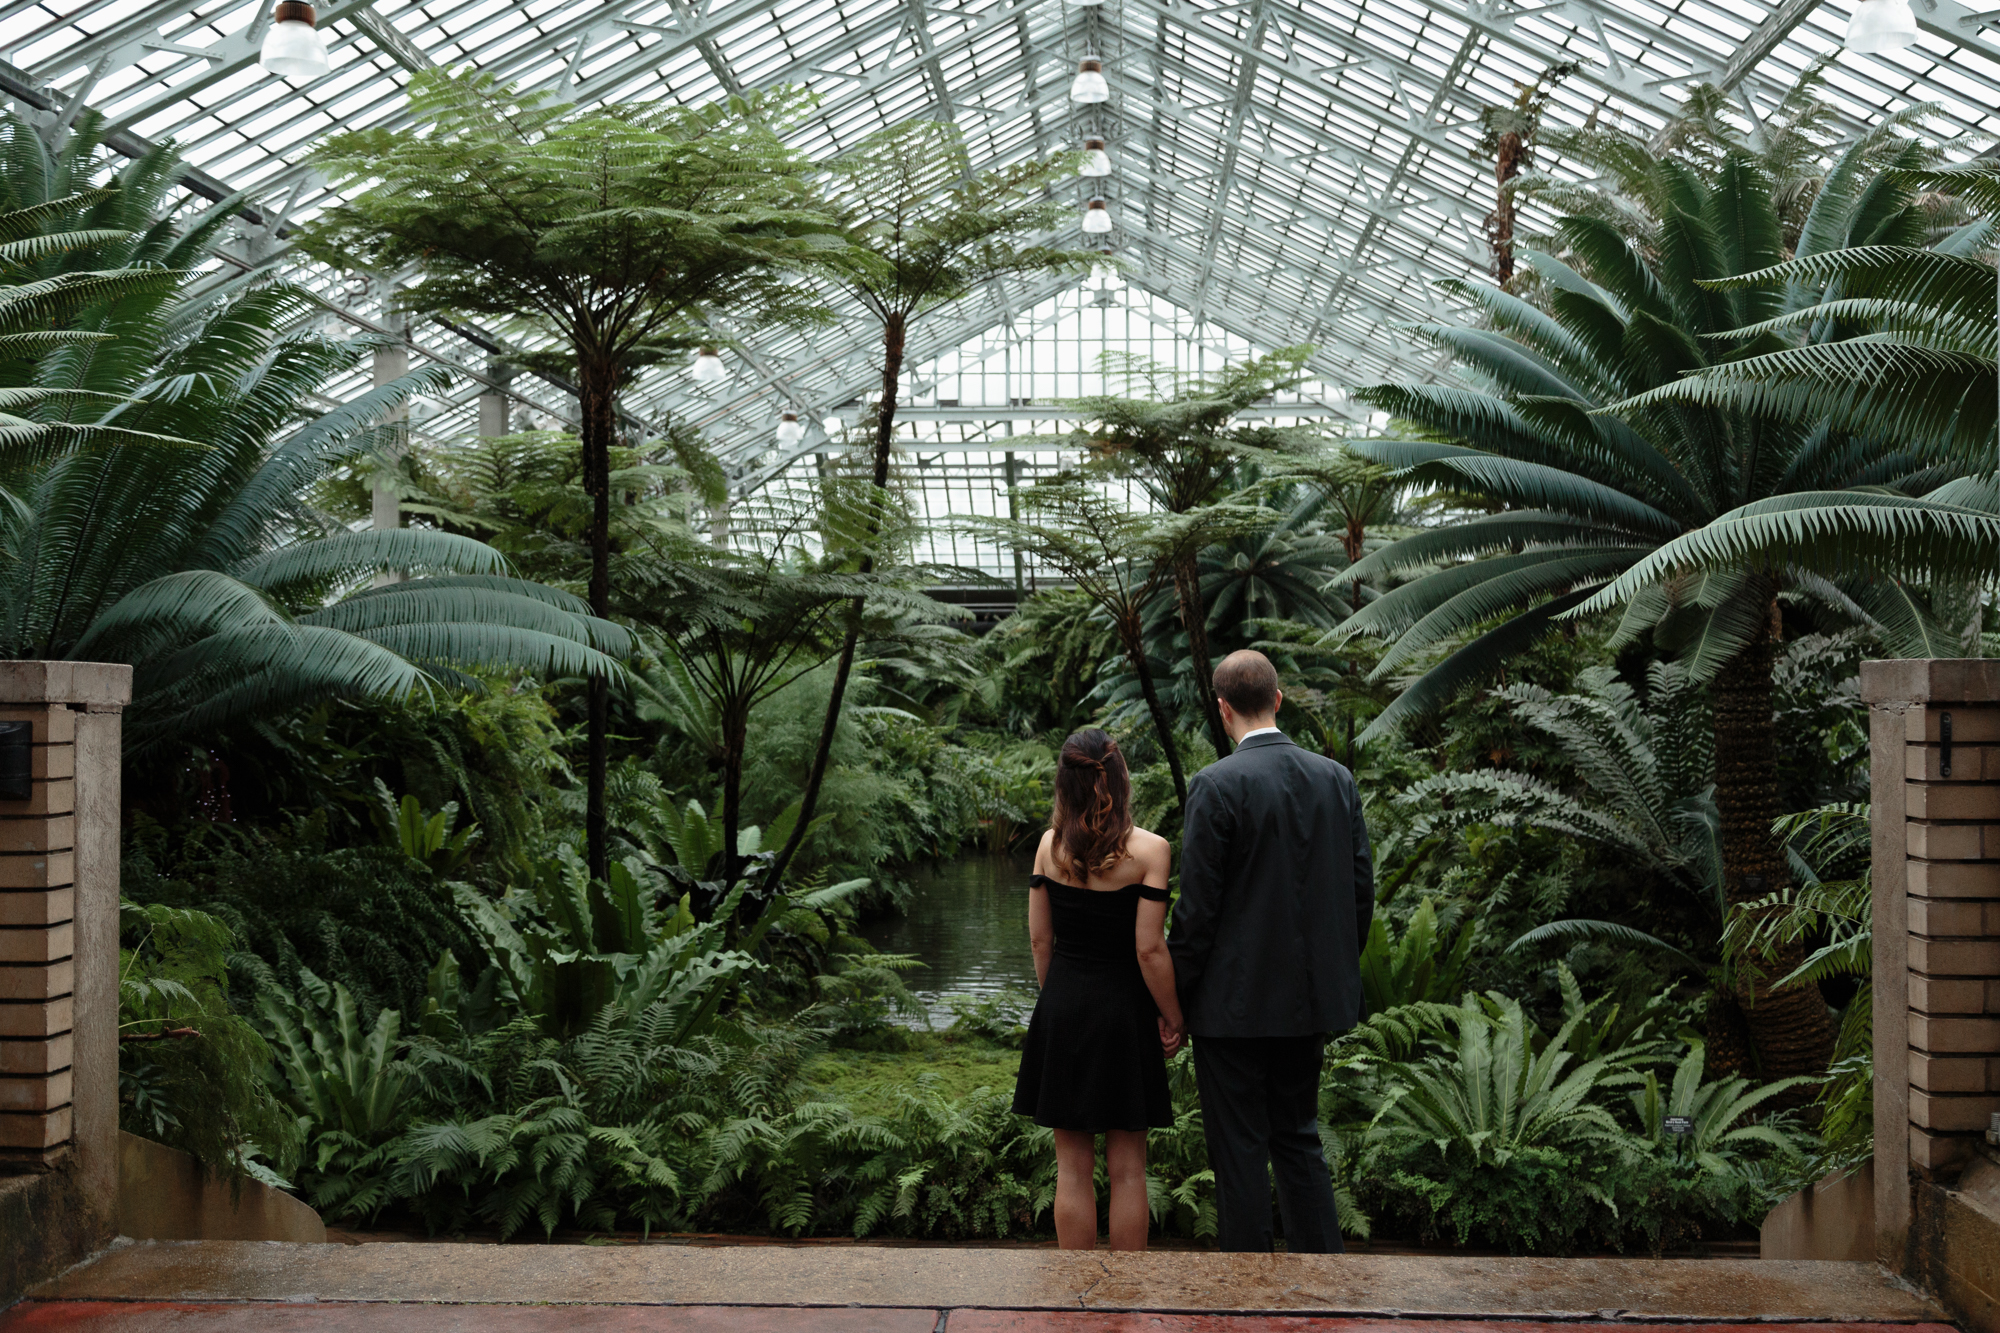 Engaged at the Garfield Park Conservatory